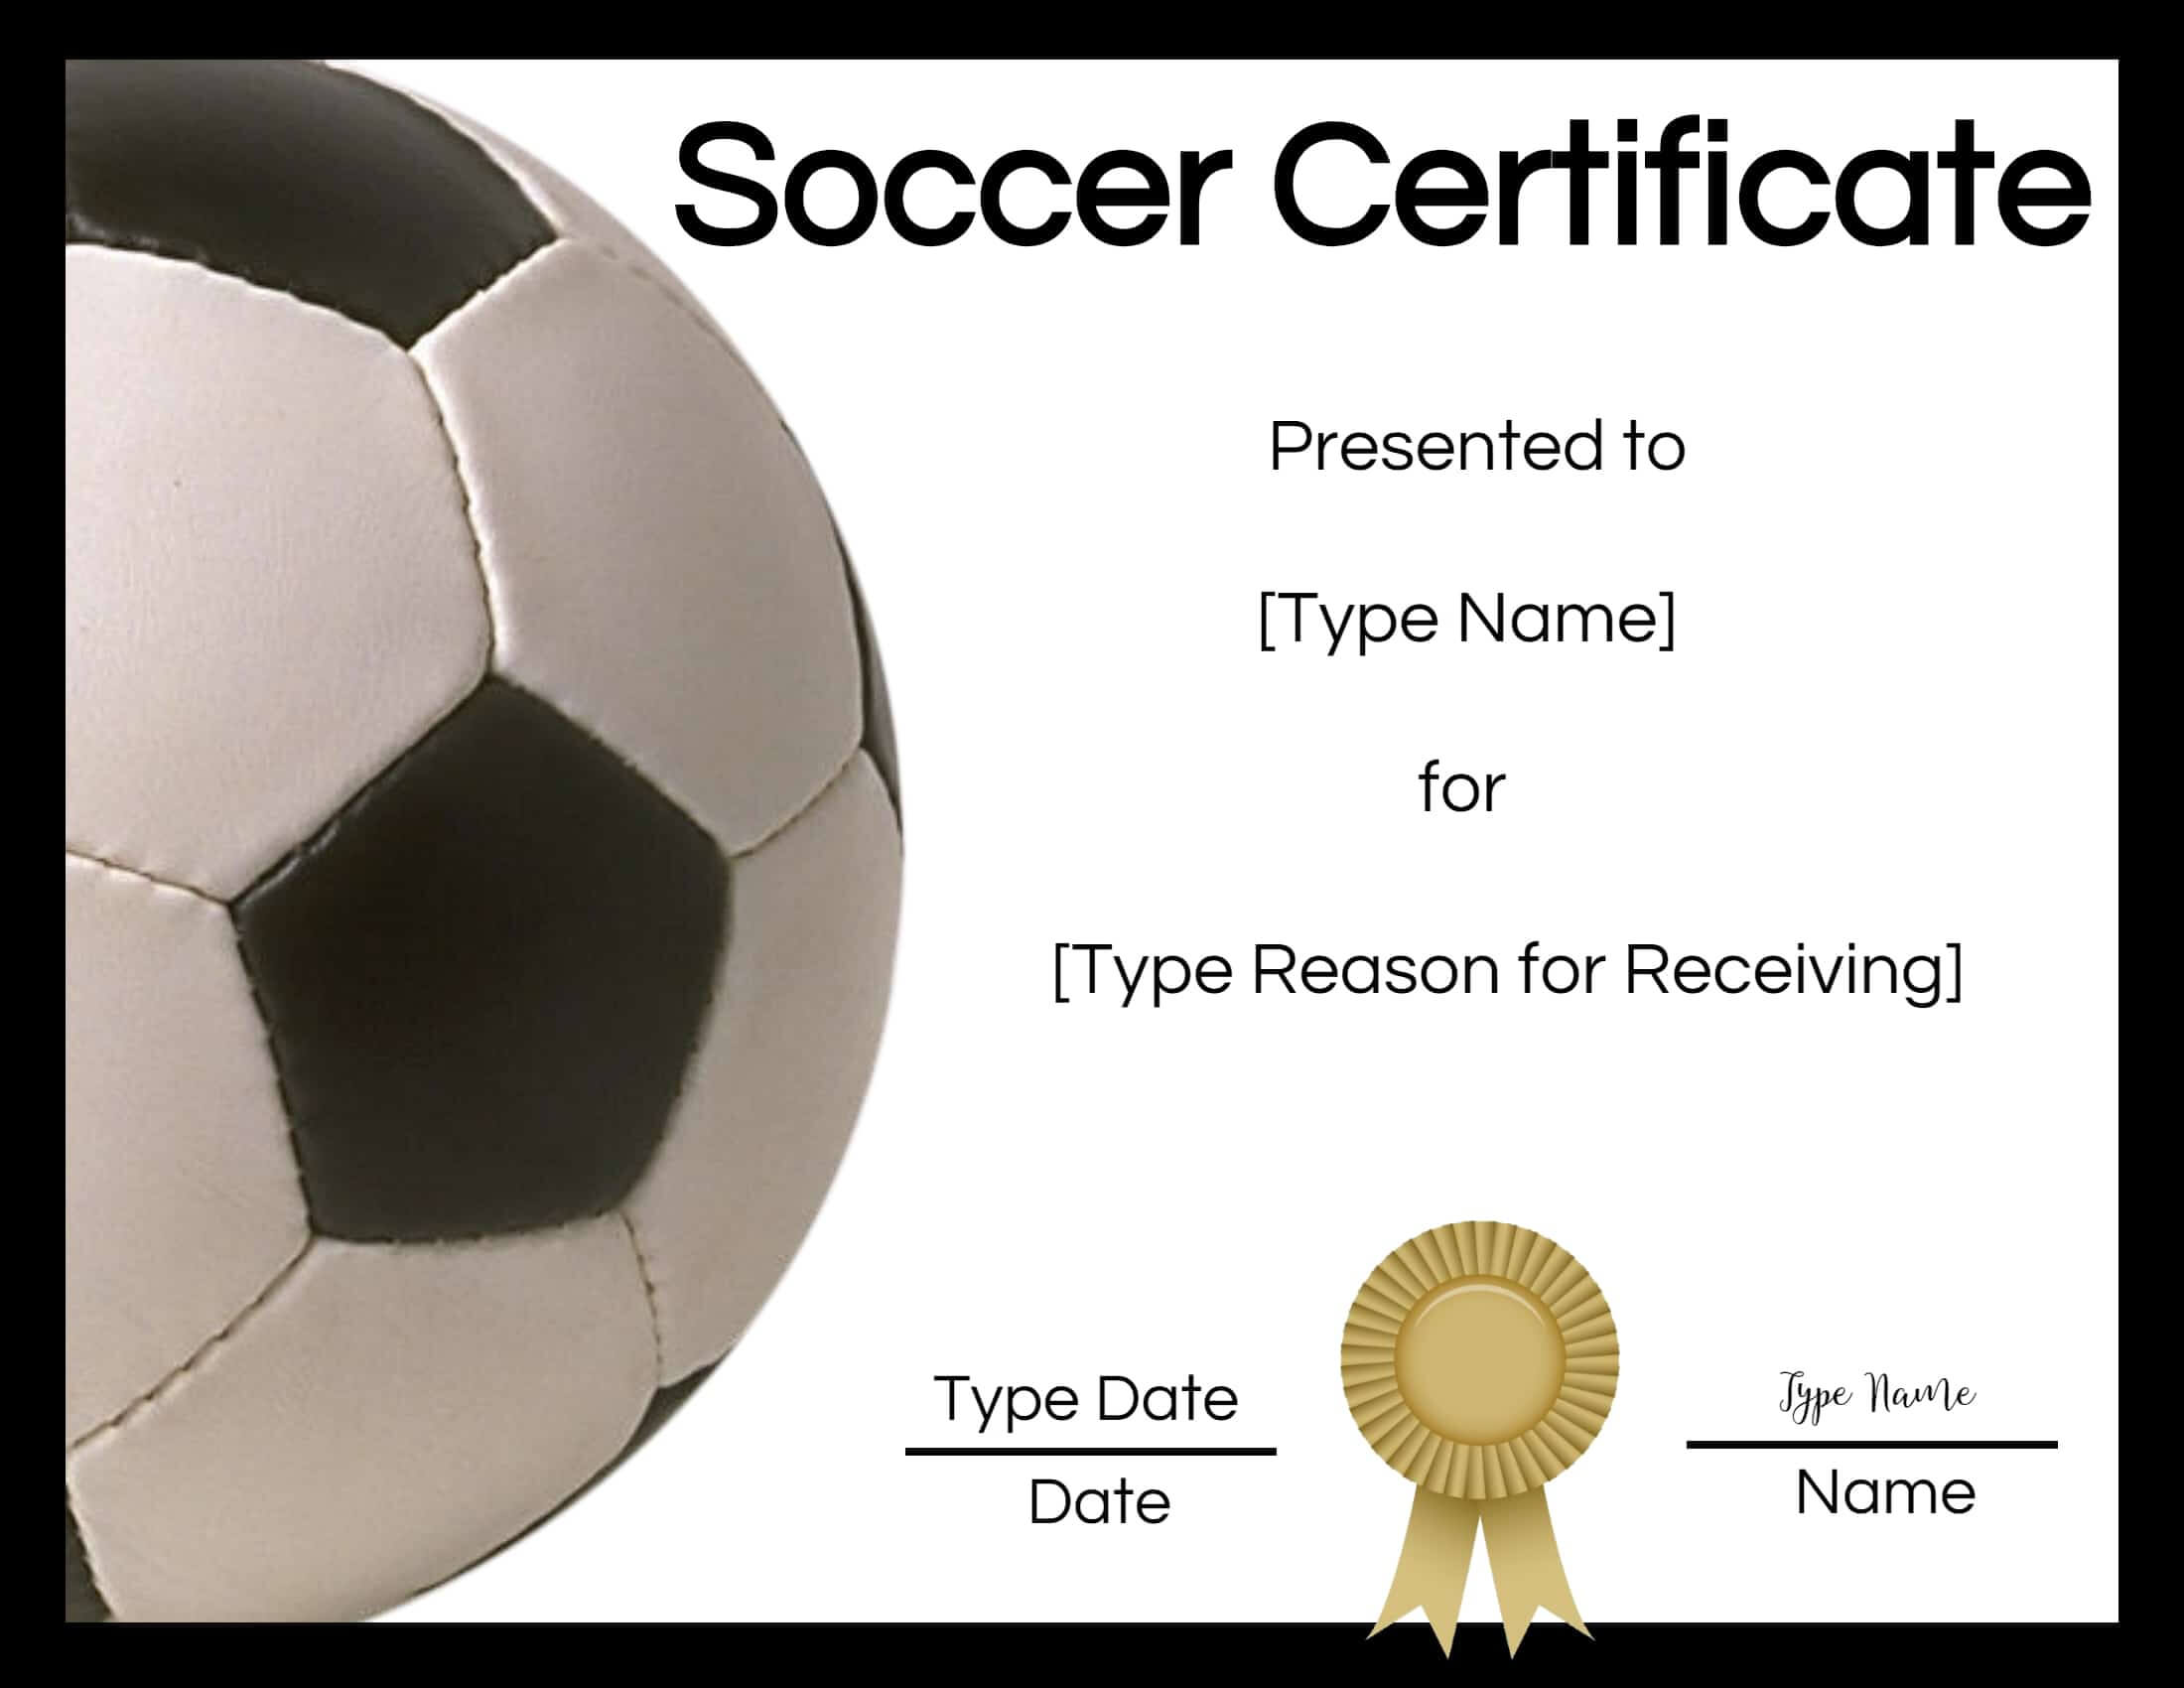 Free Soccer Certificate Maker | Edit Online And Print At Home Within Soccer Certificate Template Free